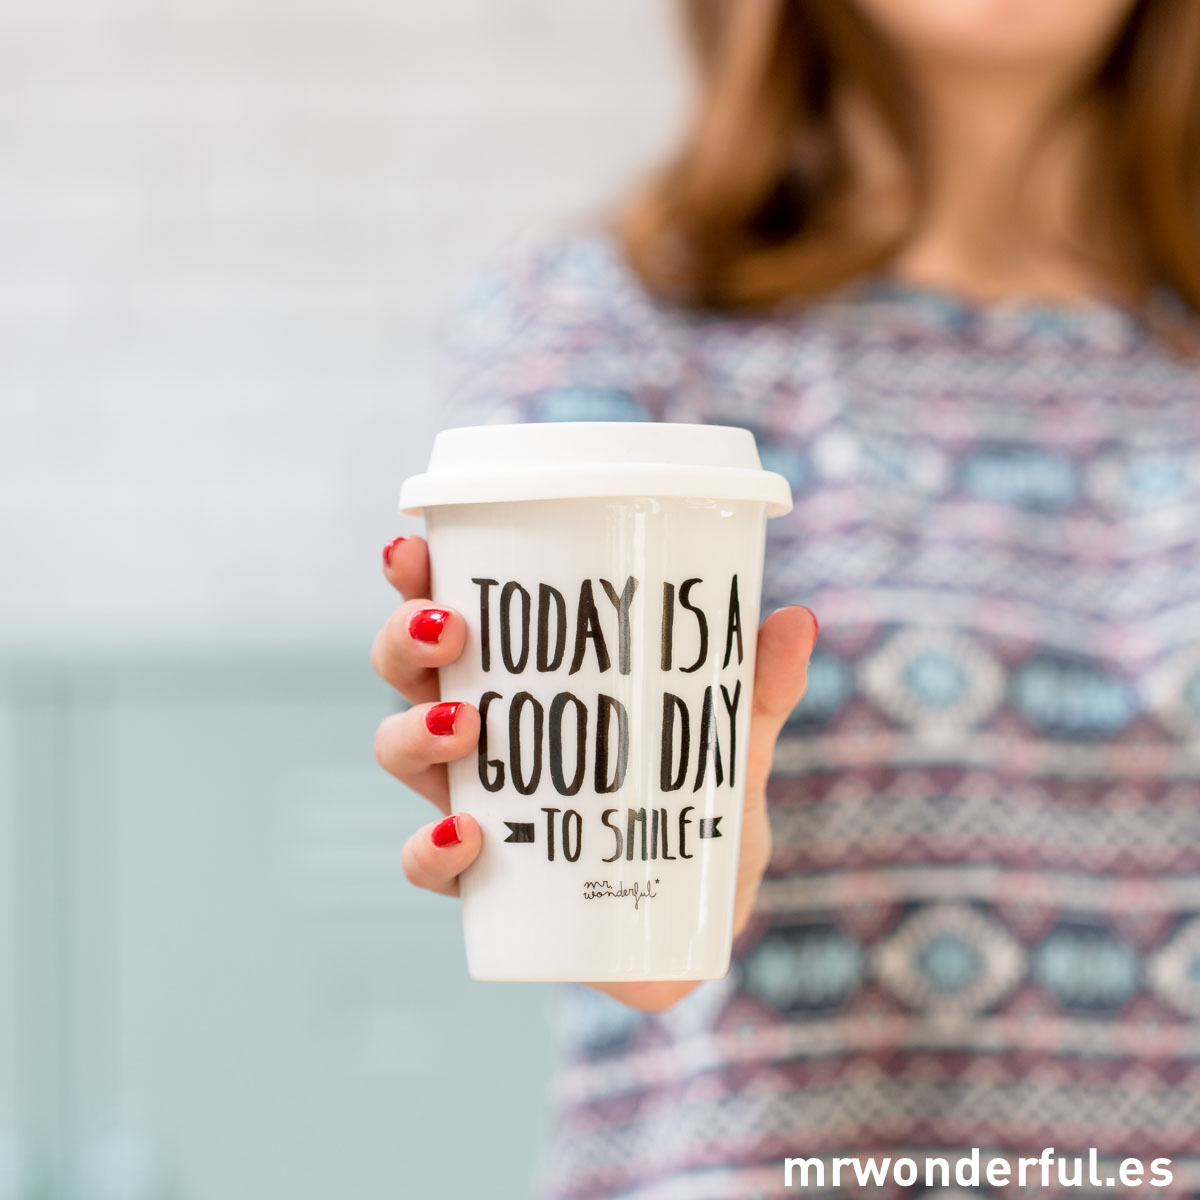 mrwonderful_843654719057_WON-174_today-is-a-good-day-to-smile_taza-take-away-34